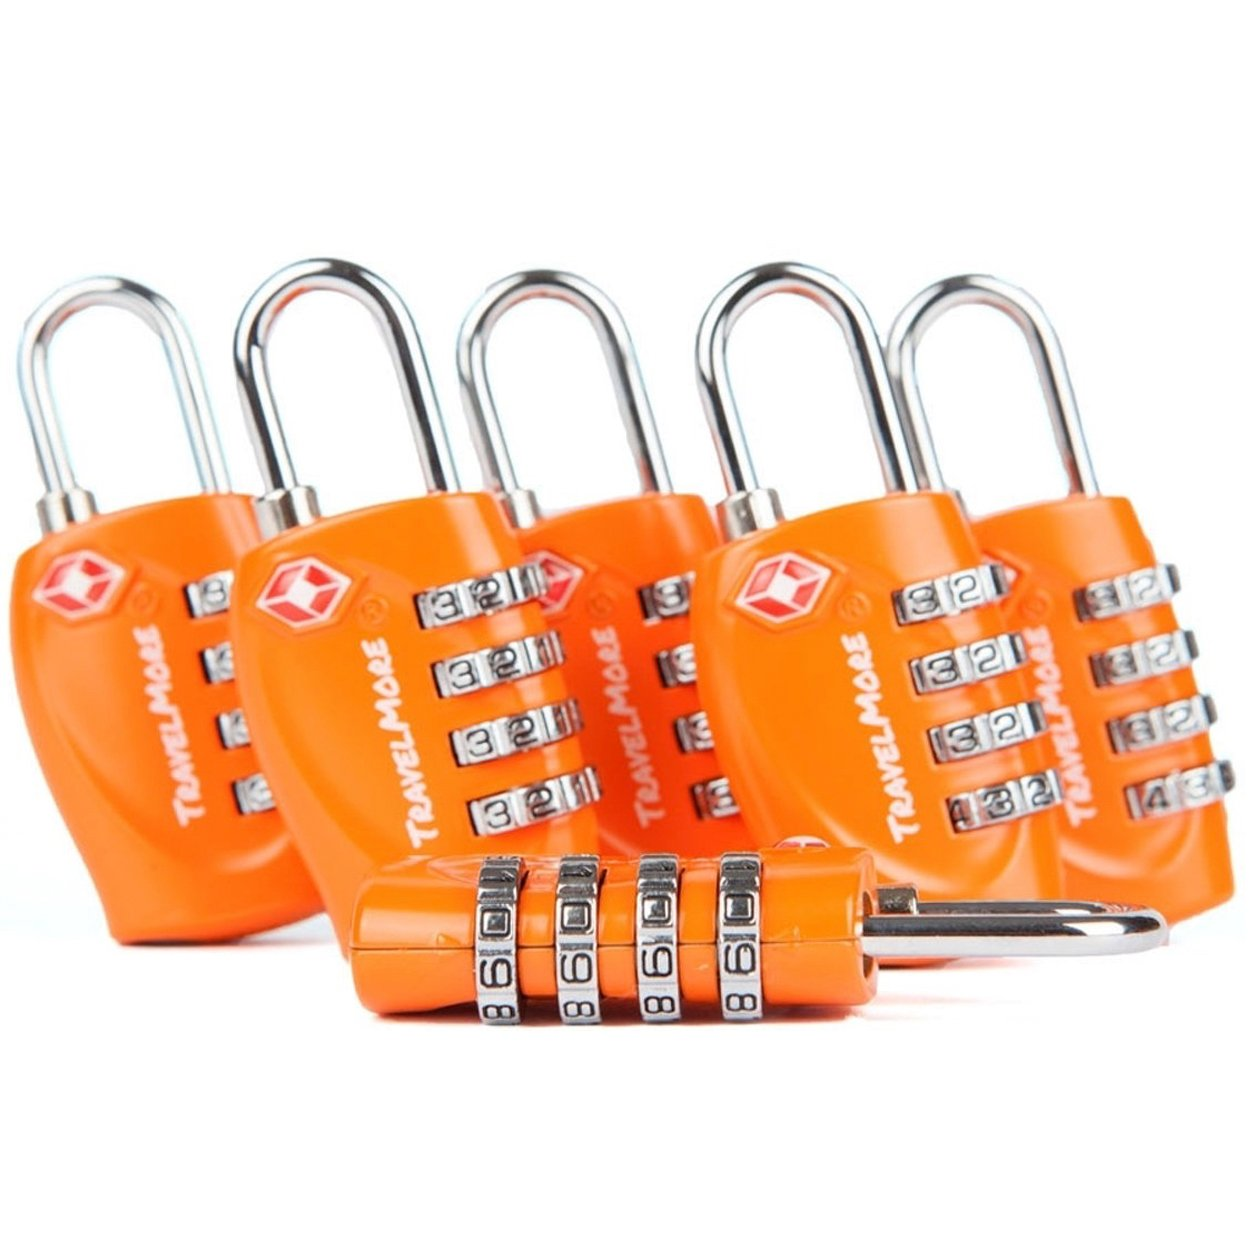 6 Pack TSA Approved Luggage Locks for Travel Safety, Small 4 Digit Combination Padlocks for Suitcases, Lockers & Bags by TravelMore